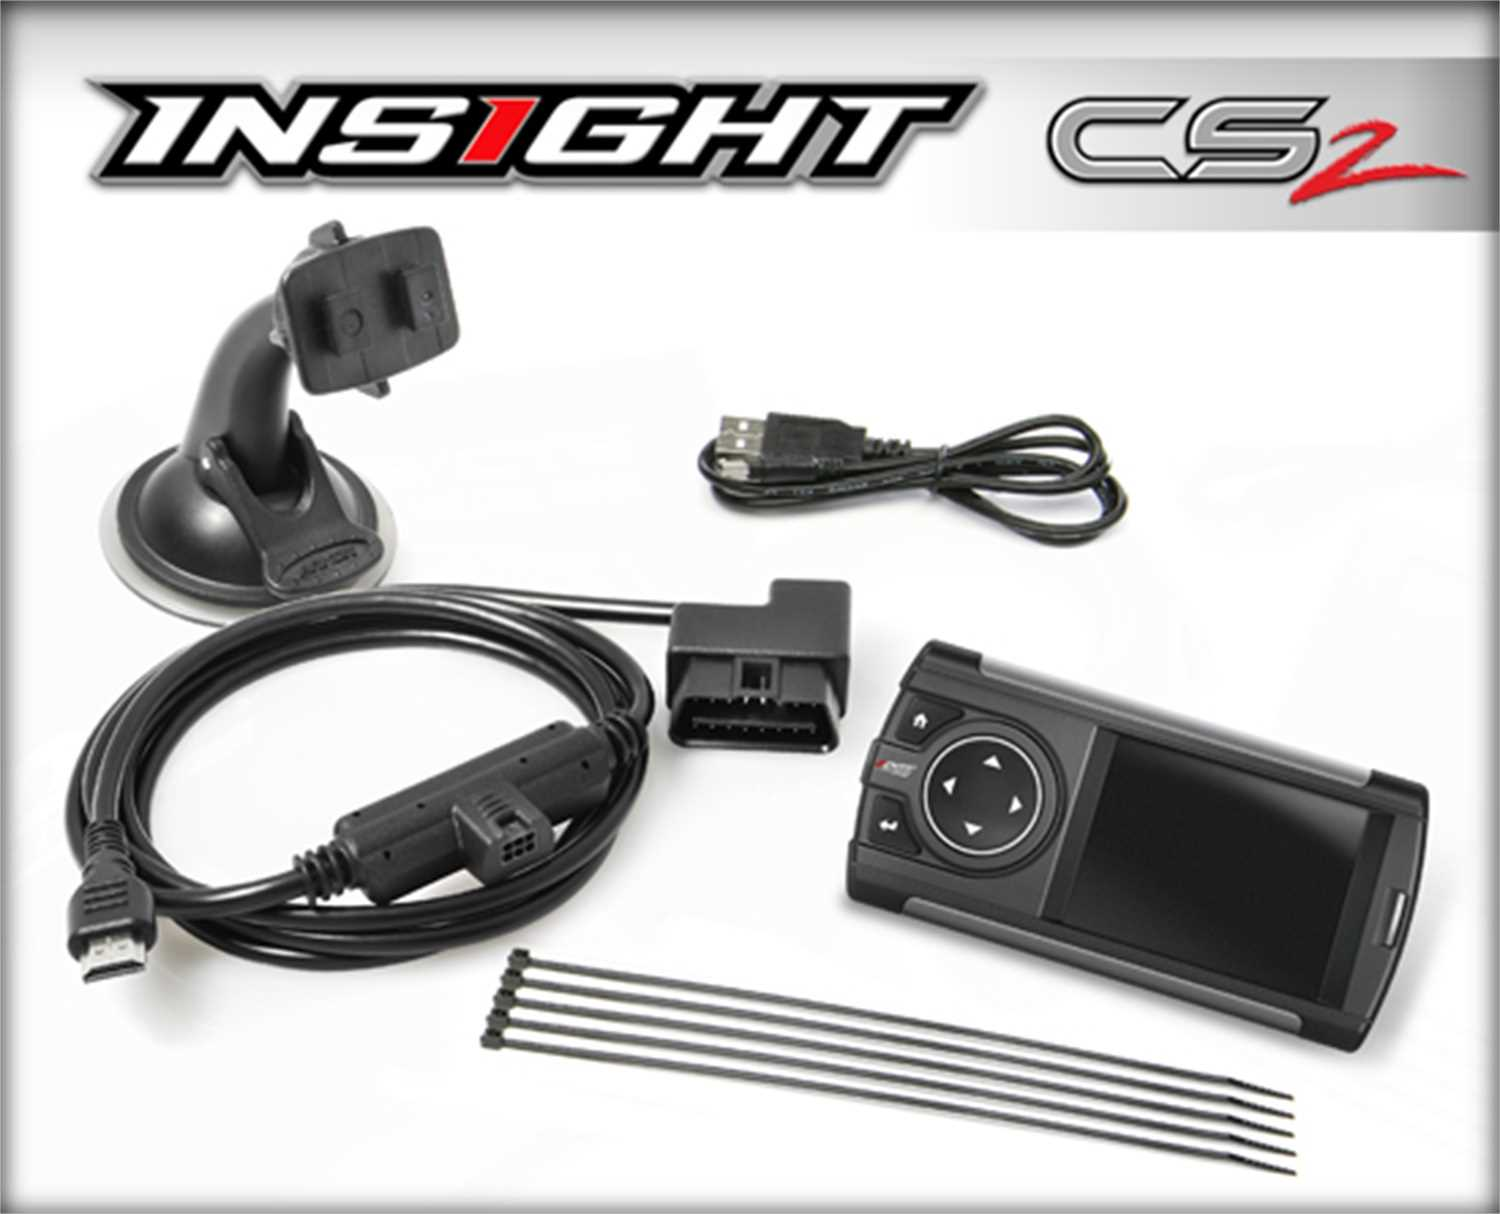 Edge Products Insight CS2 Monitor 84030